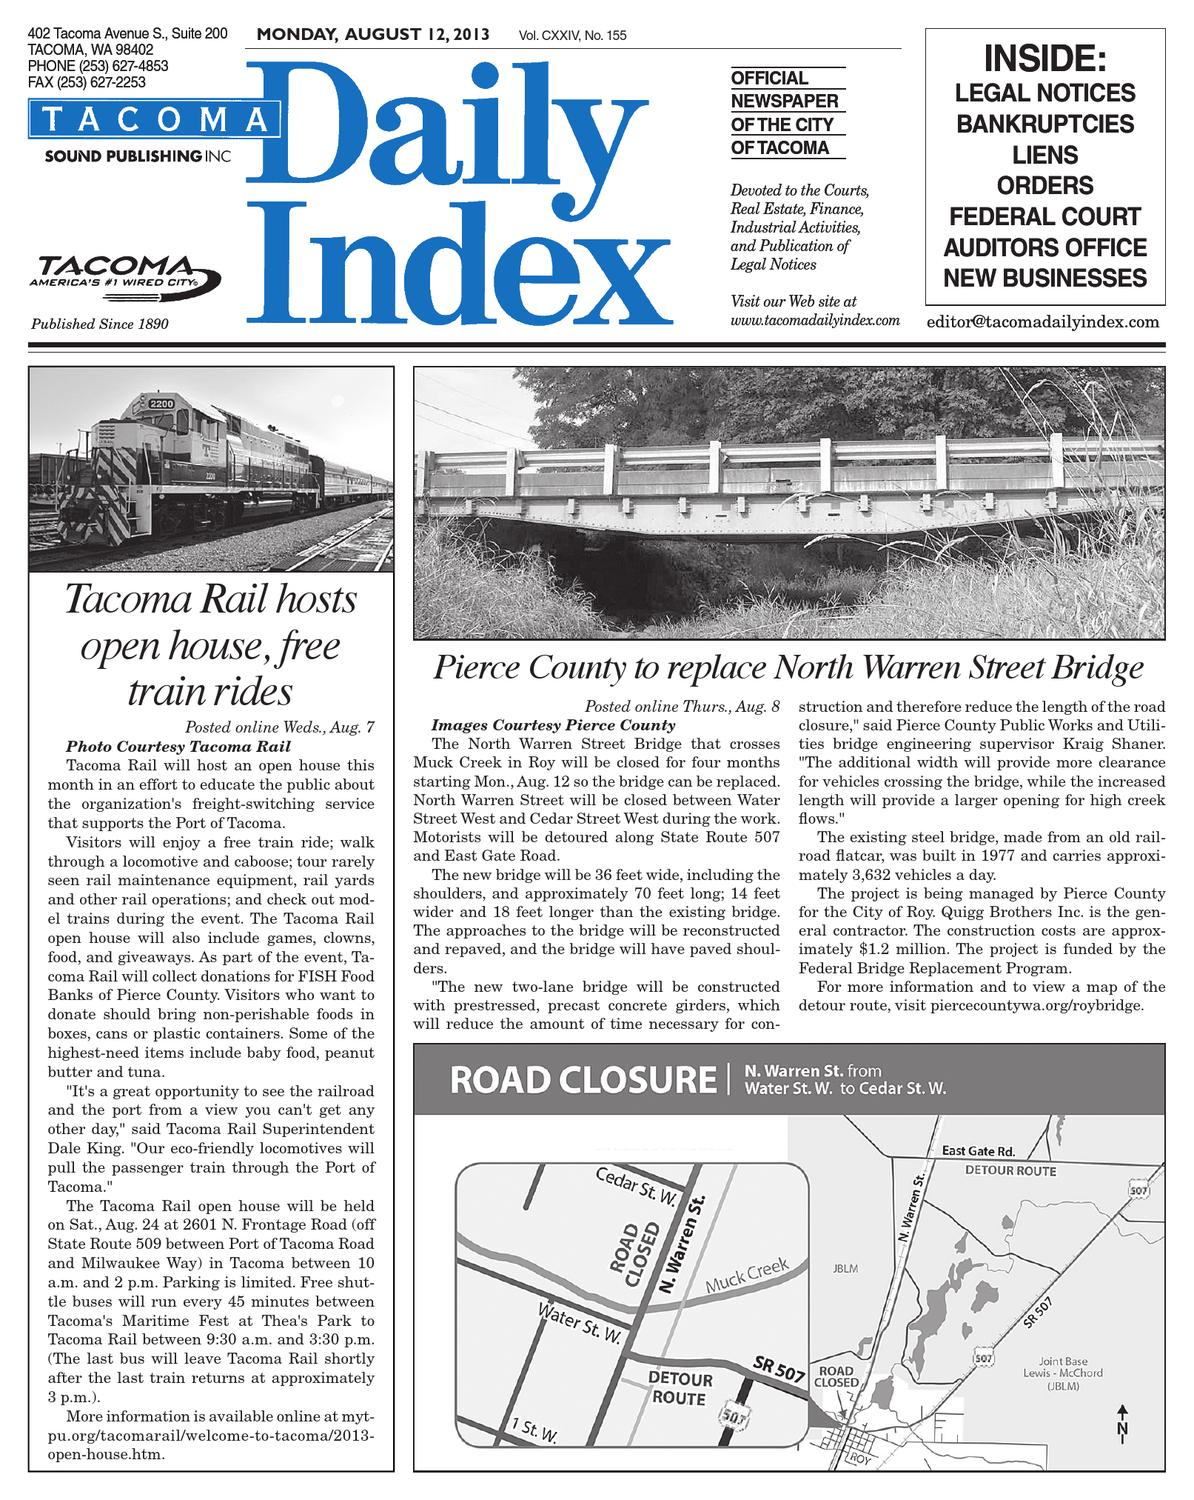 Tacoma daily index august 12 2013 by sound publishing for Fish food bank tacoma